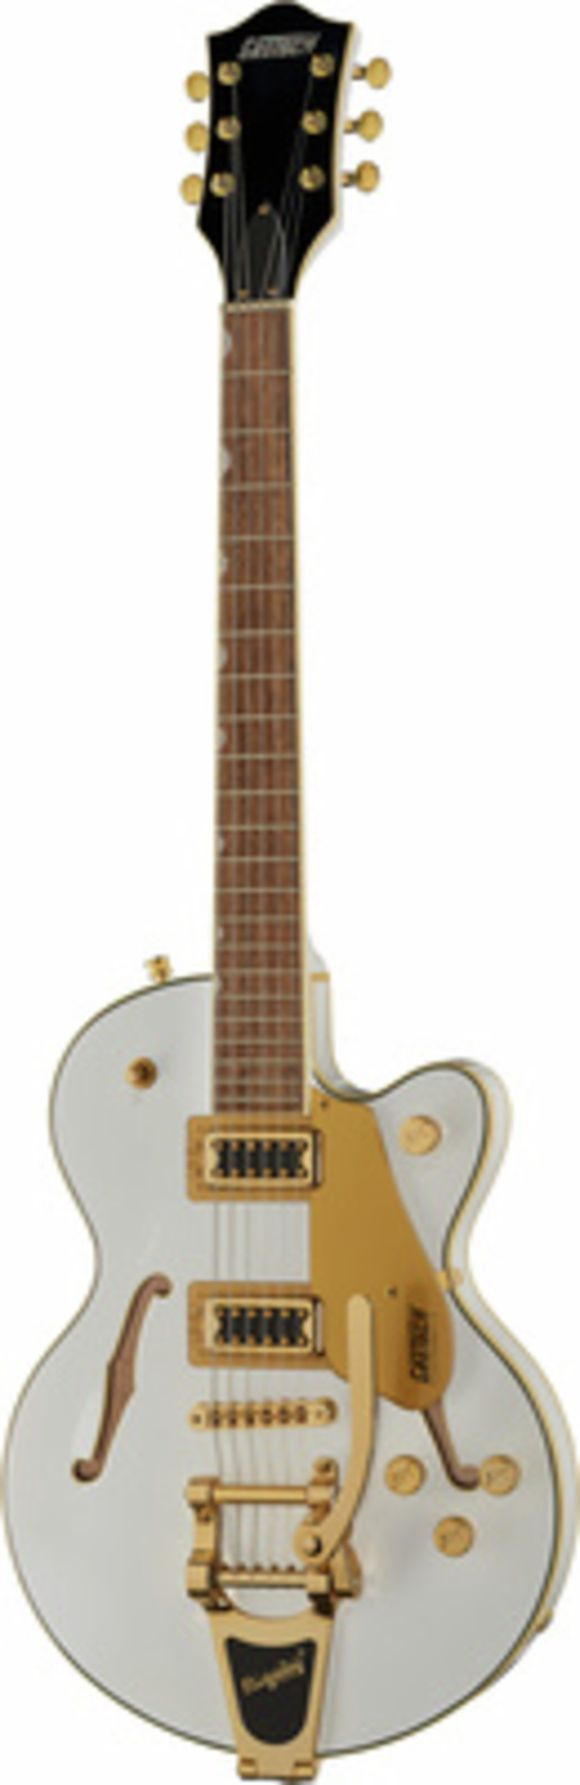 LTD G5655TG Snow Crest Gretsch